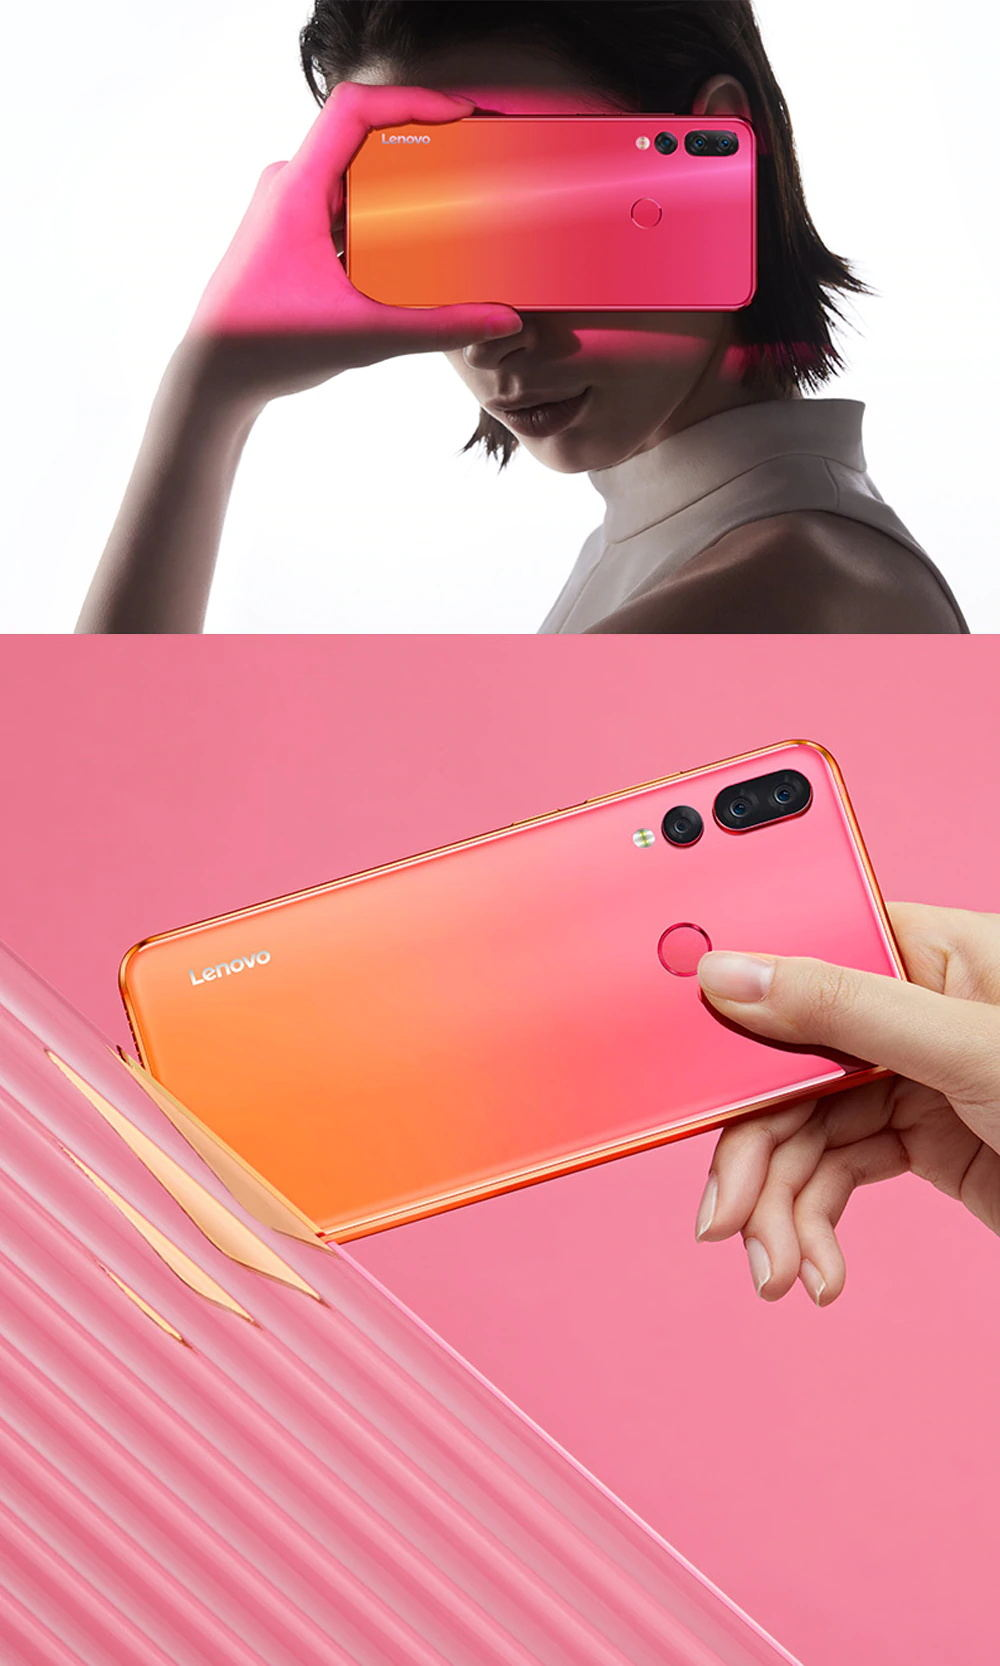 lenovo z5s 4gb price